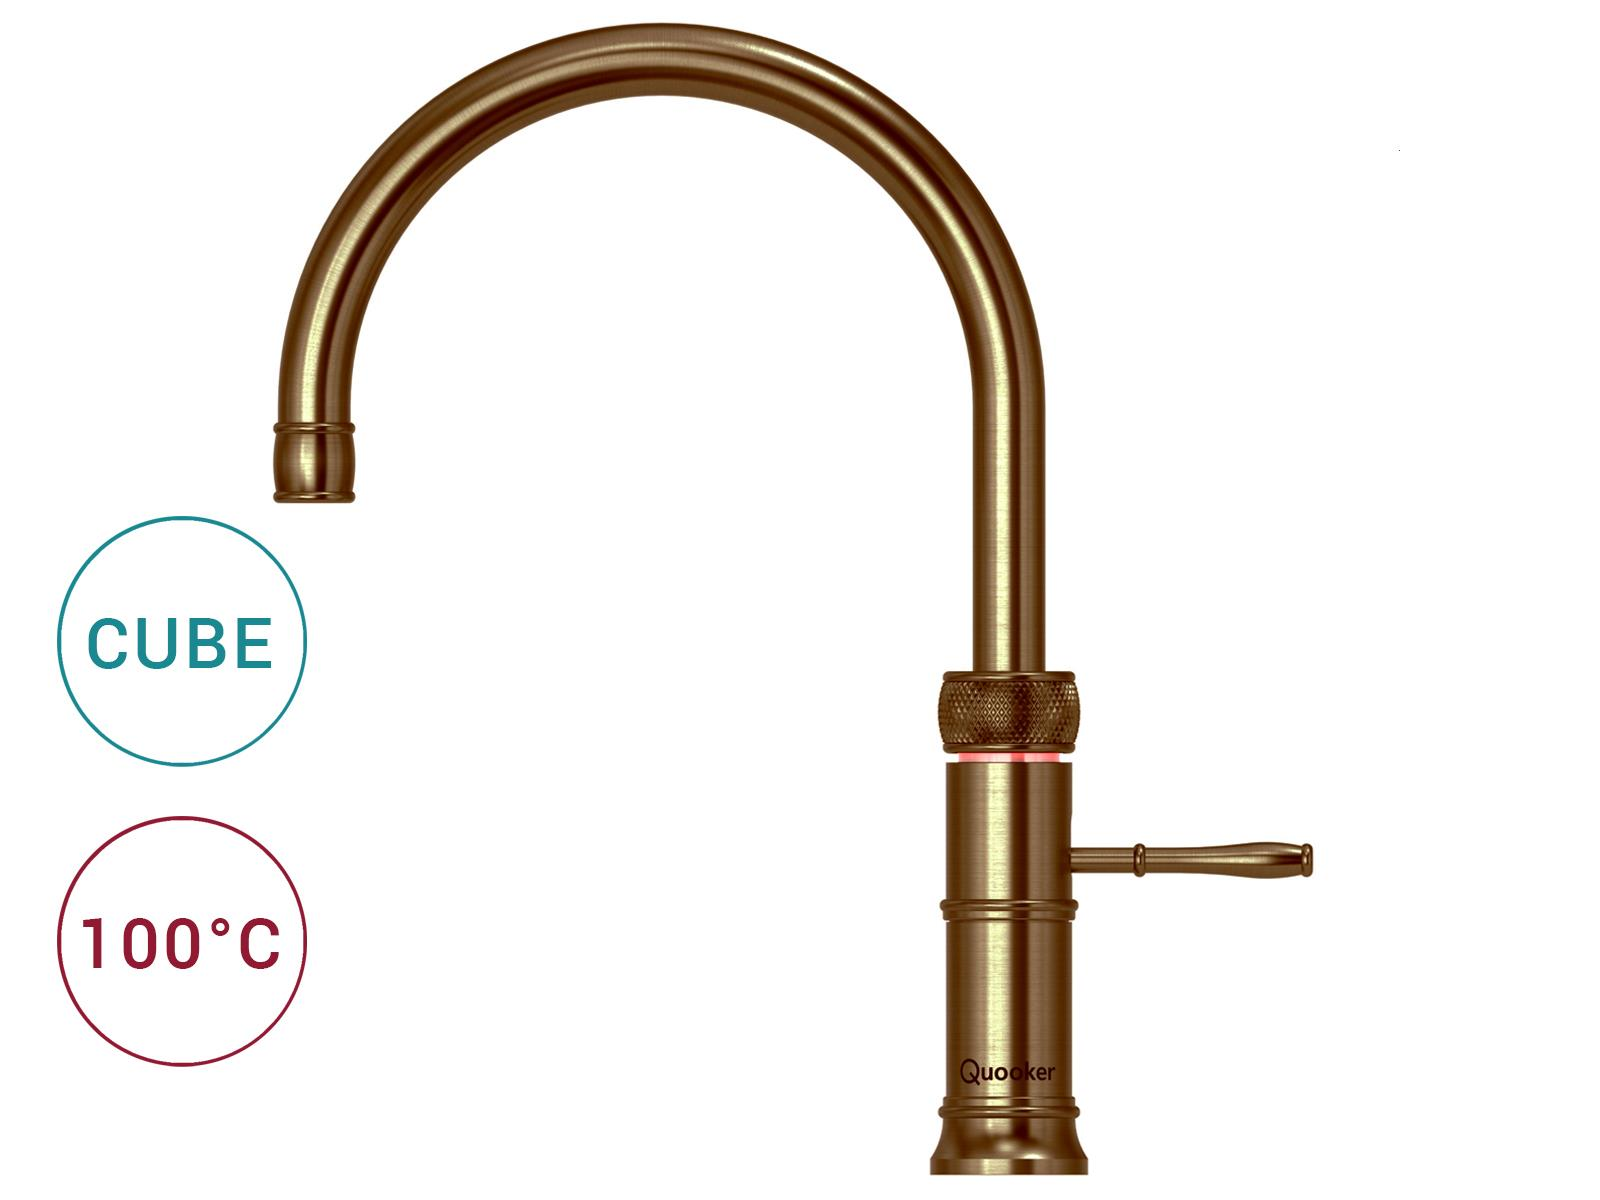 Quooker COMBI 2.2 E & CUBE | Classic Fusion Round PTN (Messing Patina)